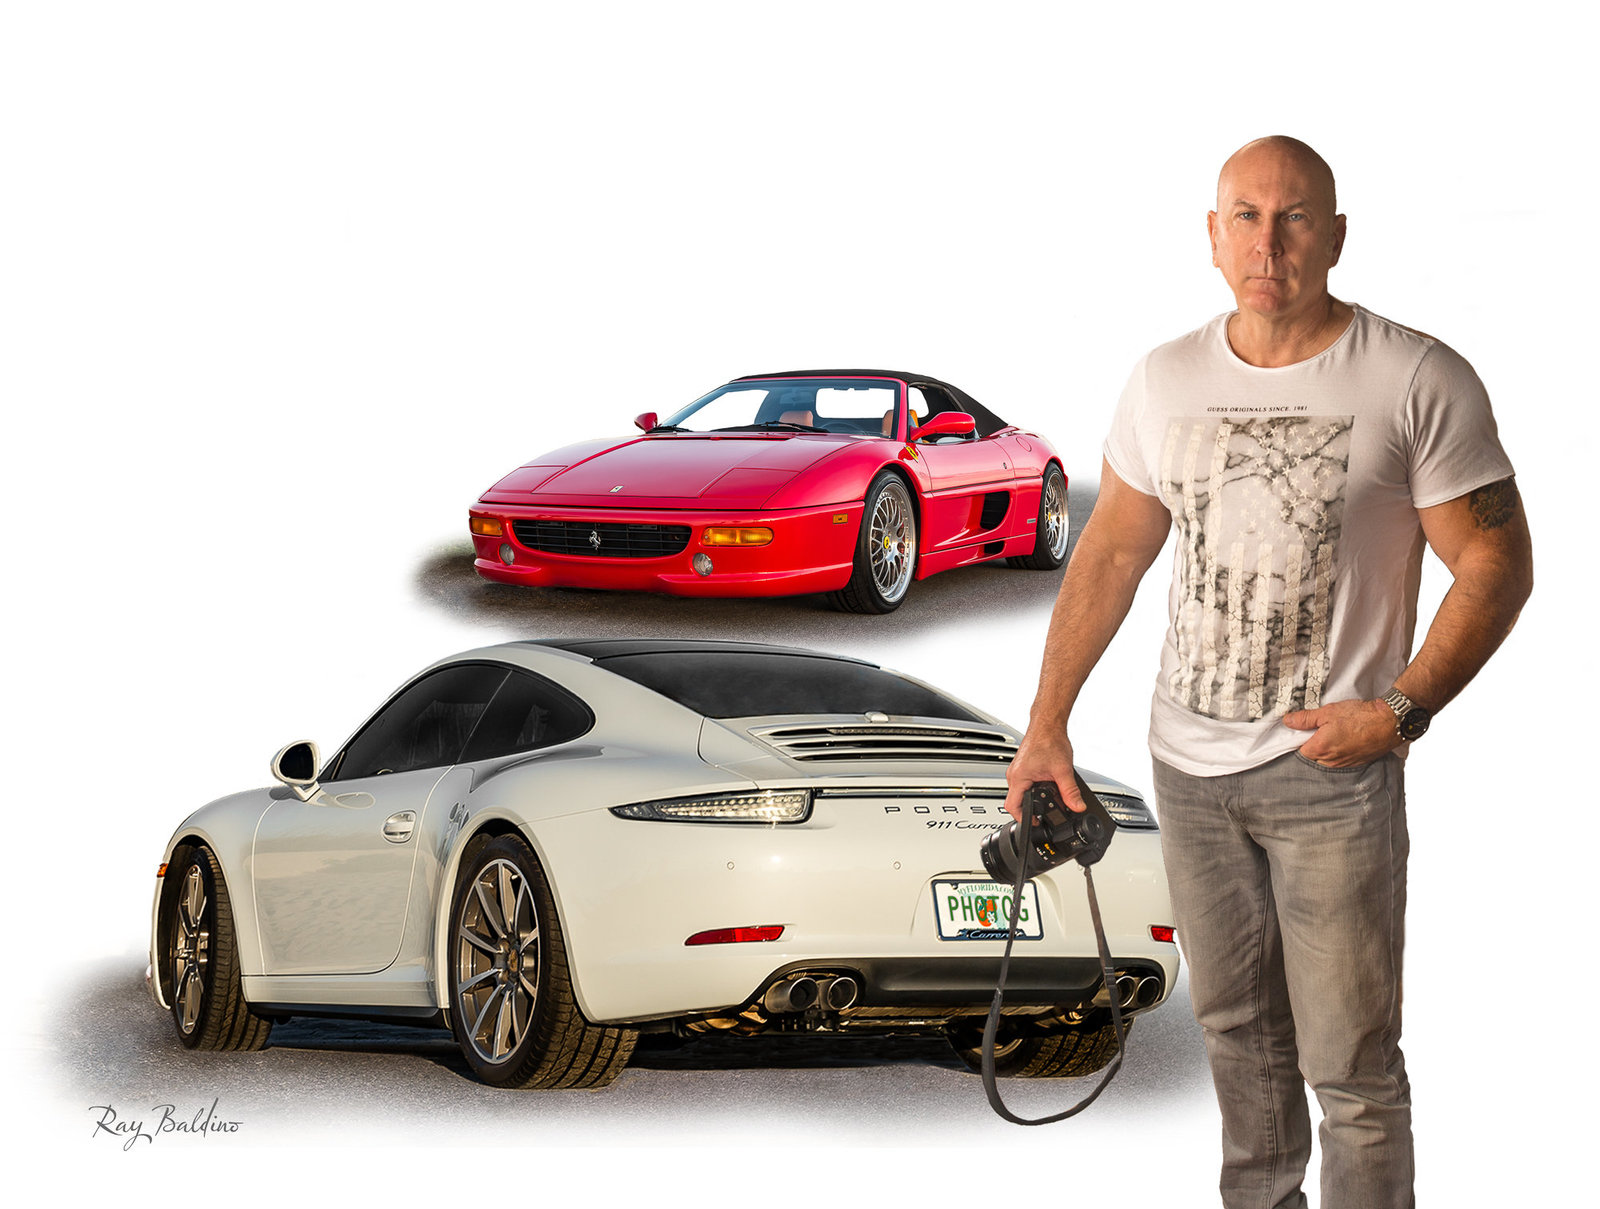 ray baldino with his cars